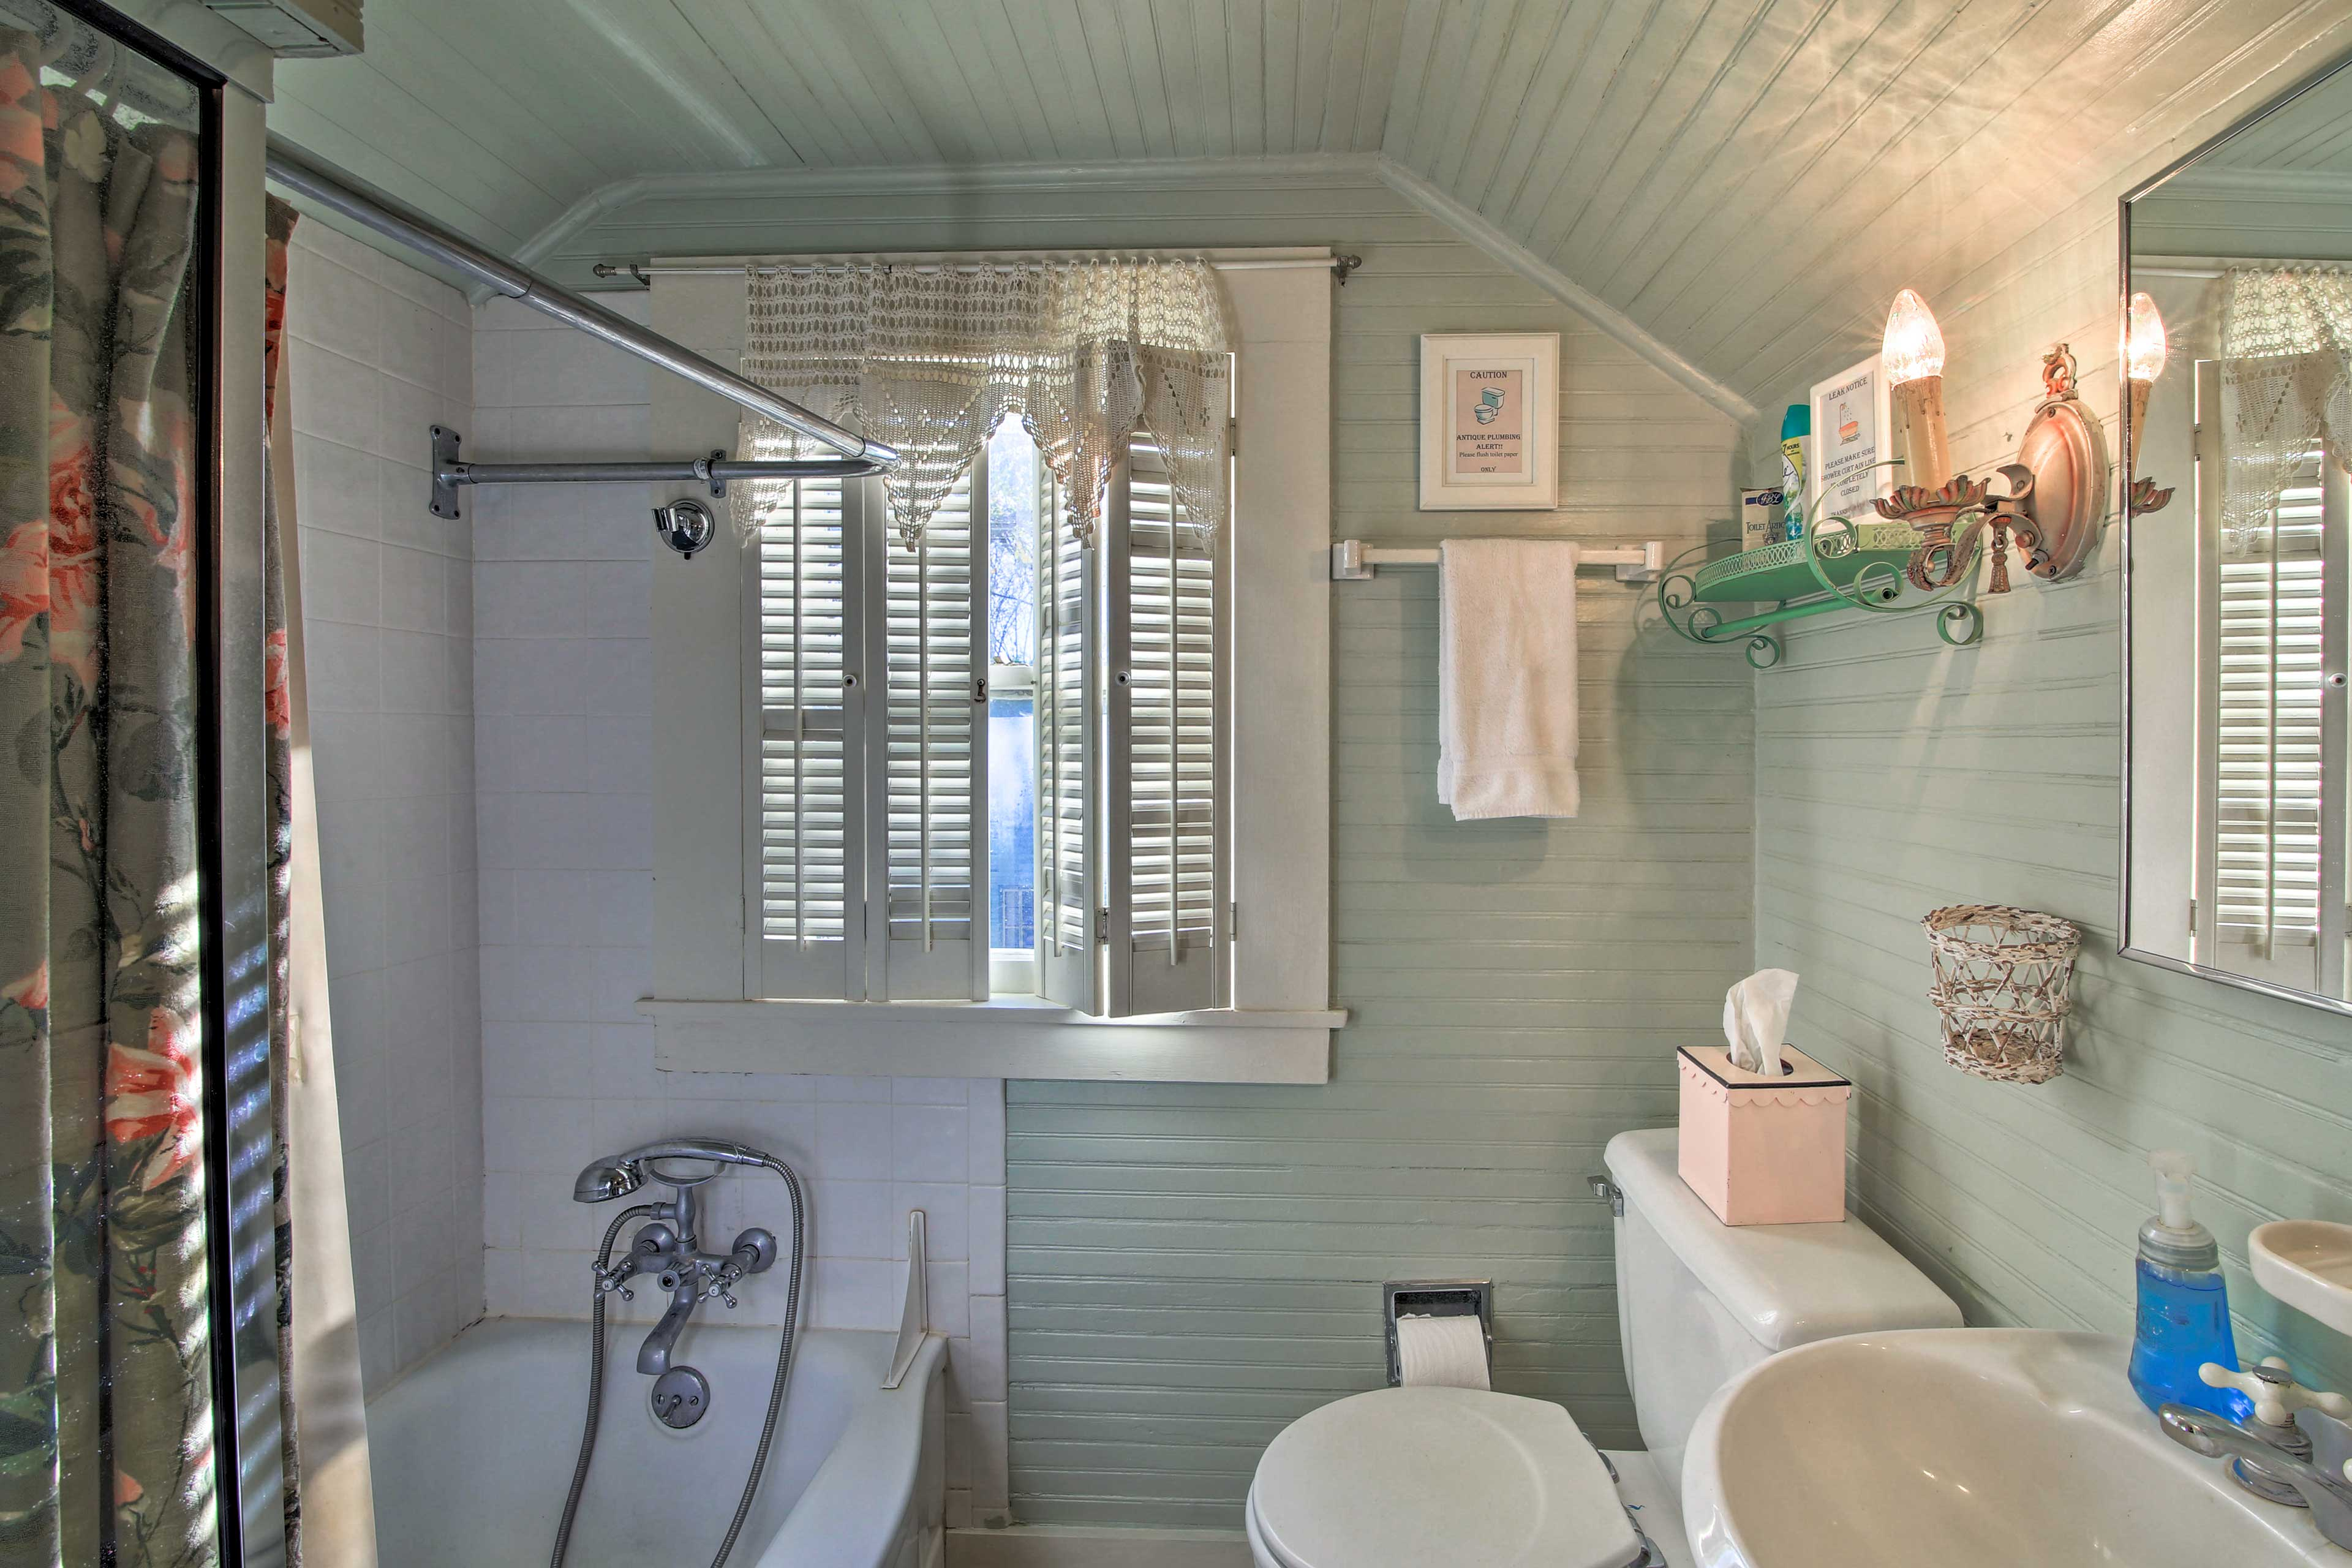 Rinse off in the shower/tub combo of the upstairs bedroom.